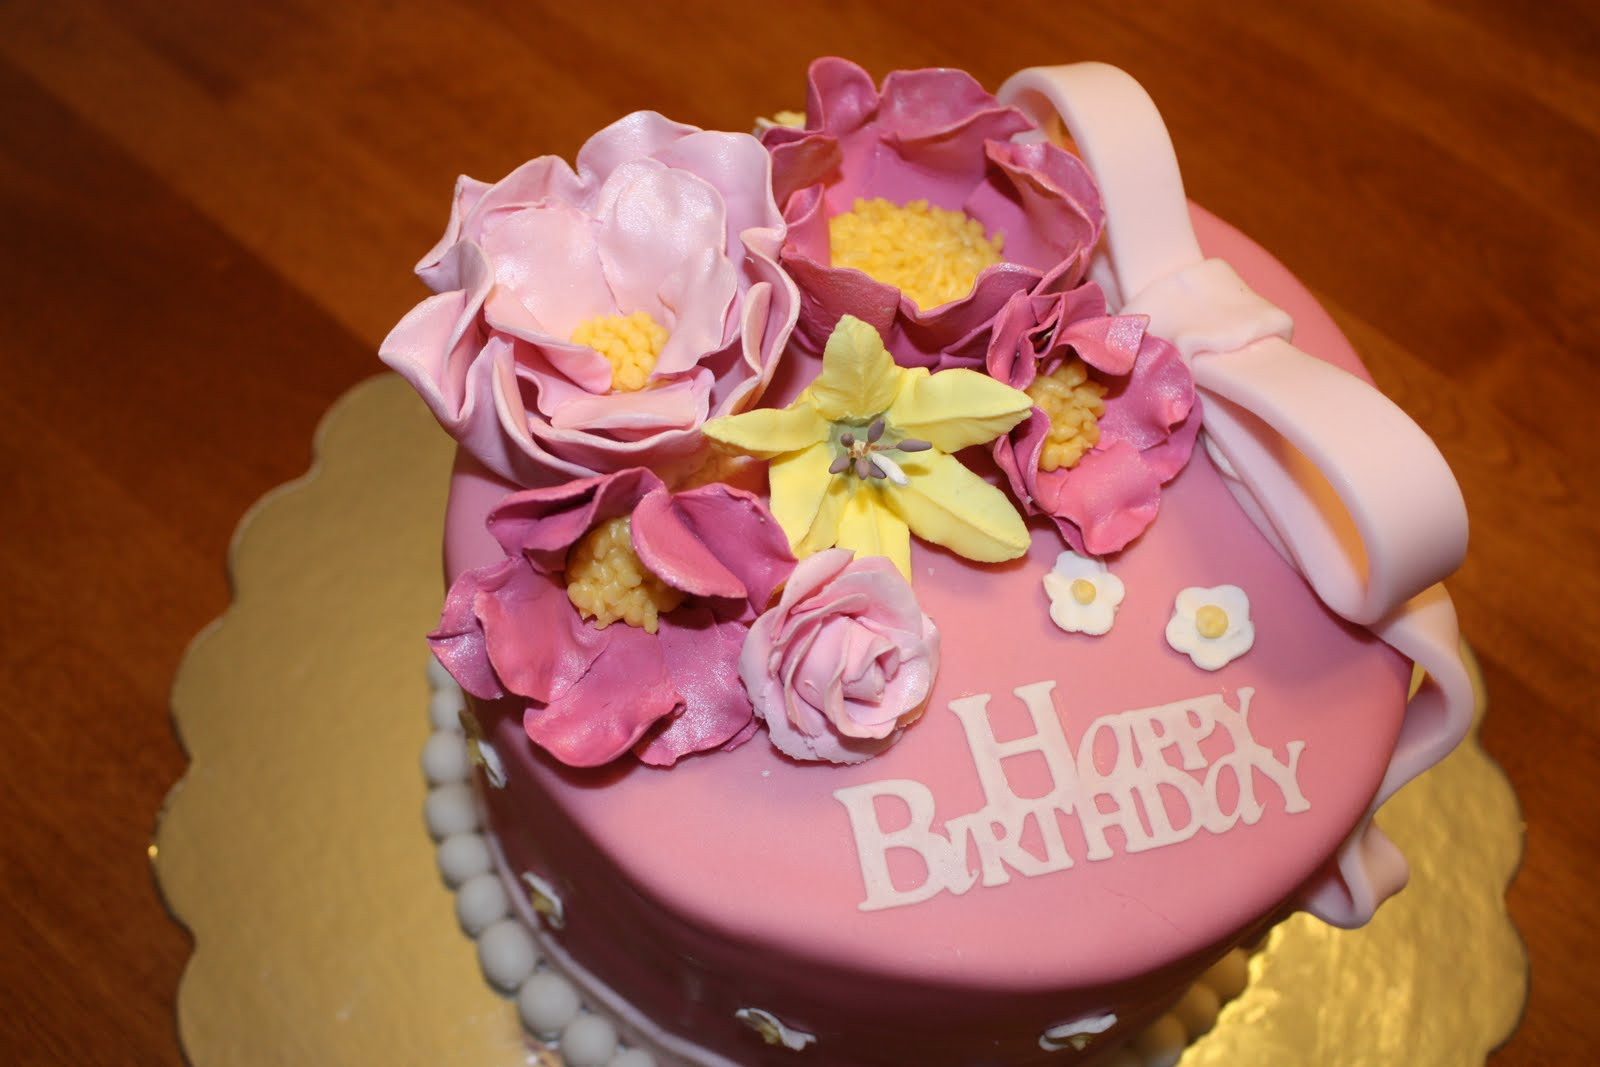 Happy birthday cake and flower for the special person happy birthday cake and flower for the special person entertainment and love is life izmirmasajfo